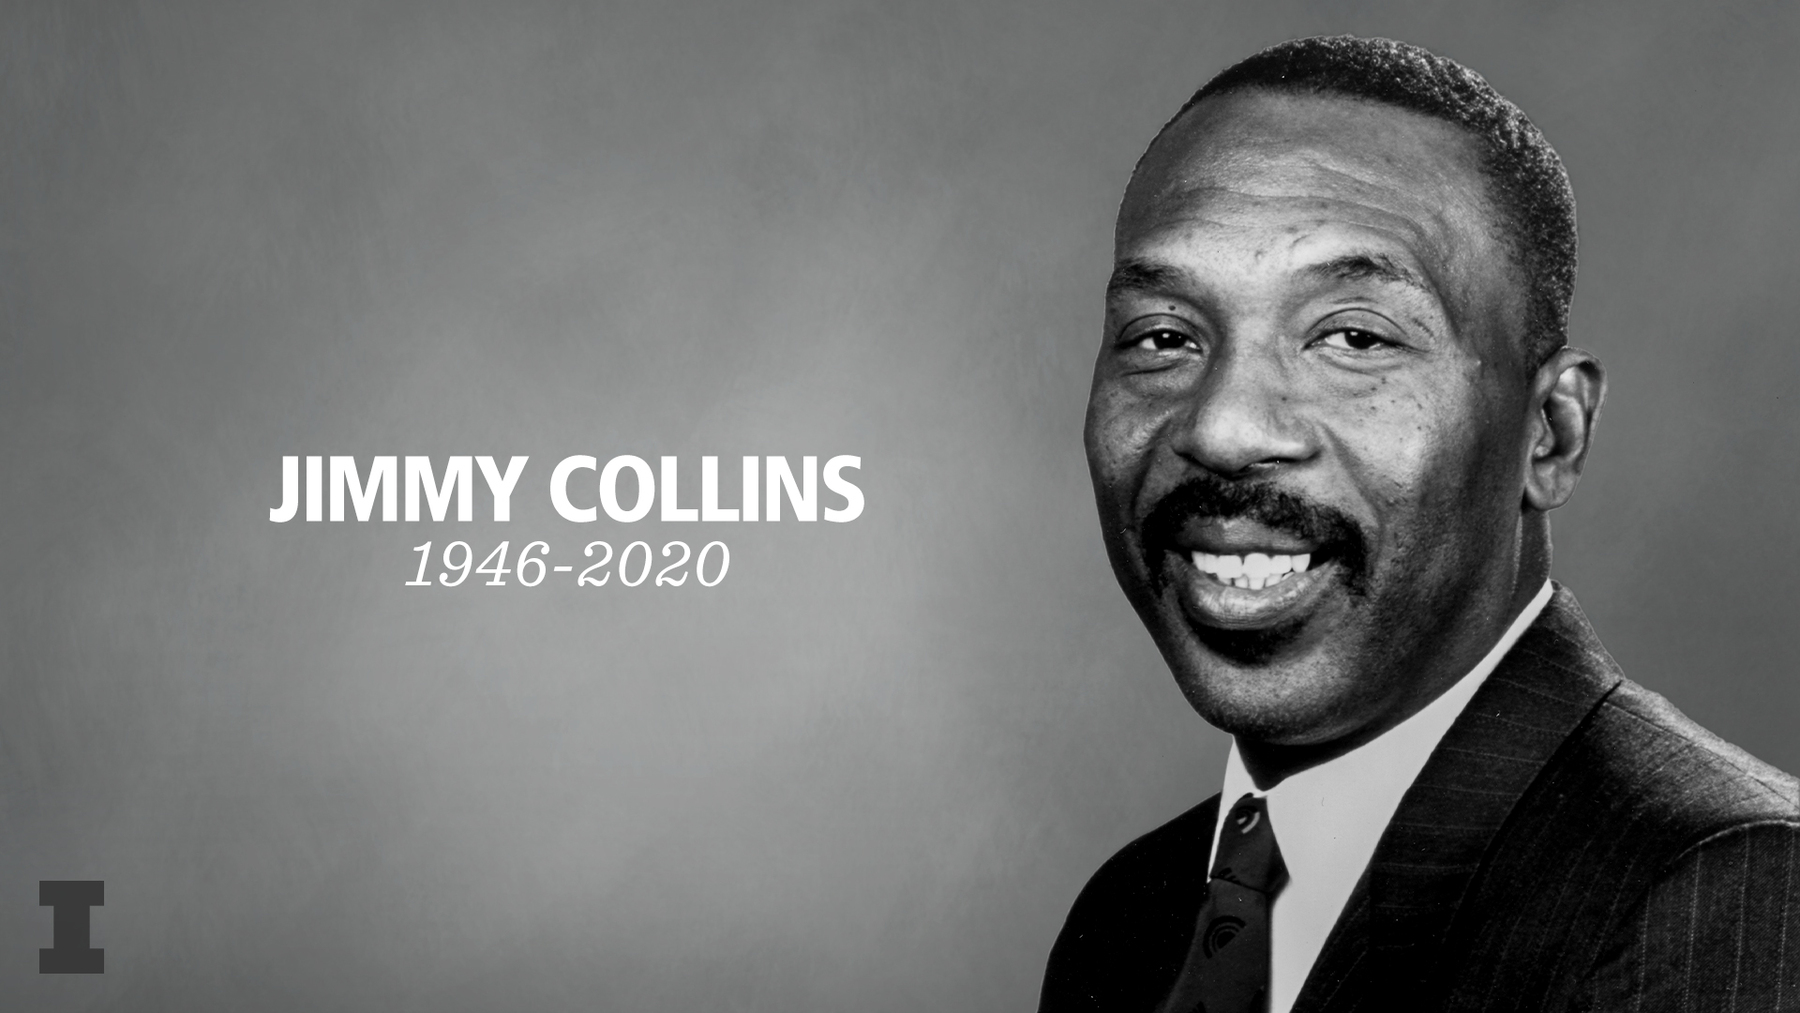 The late Jimmy Collins